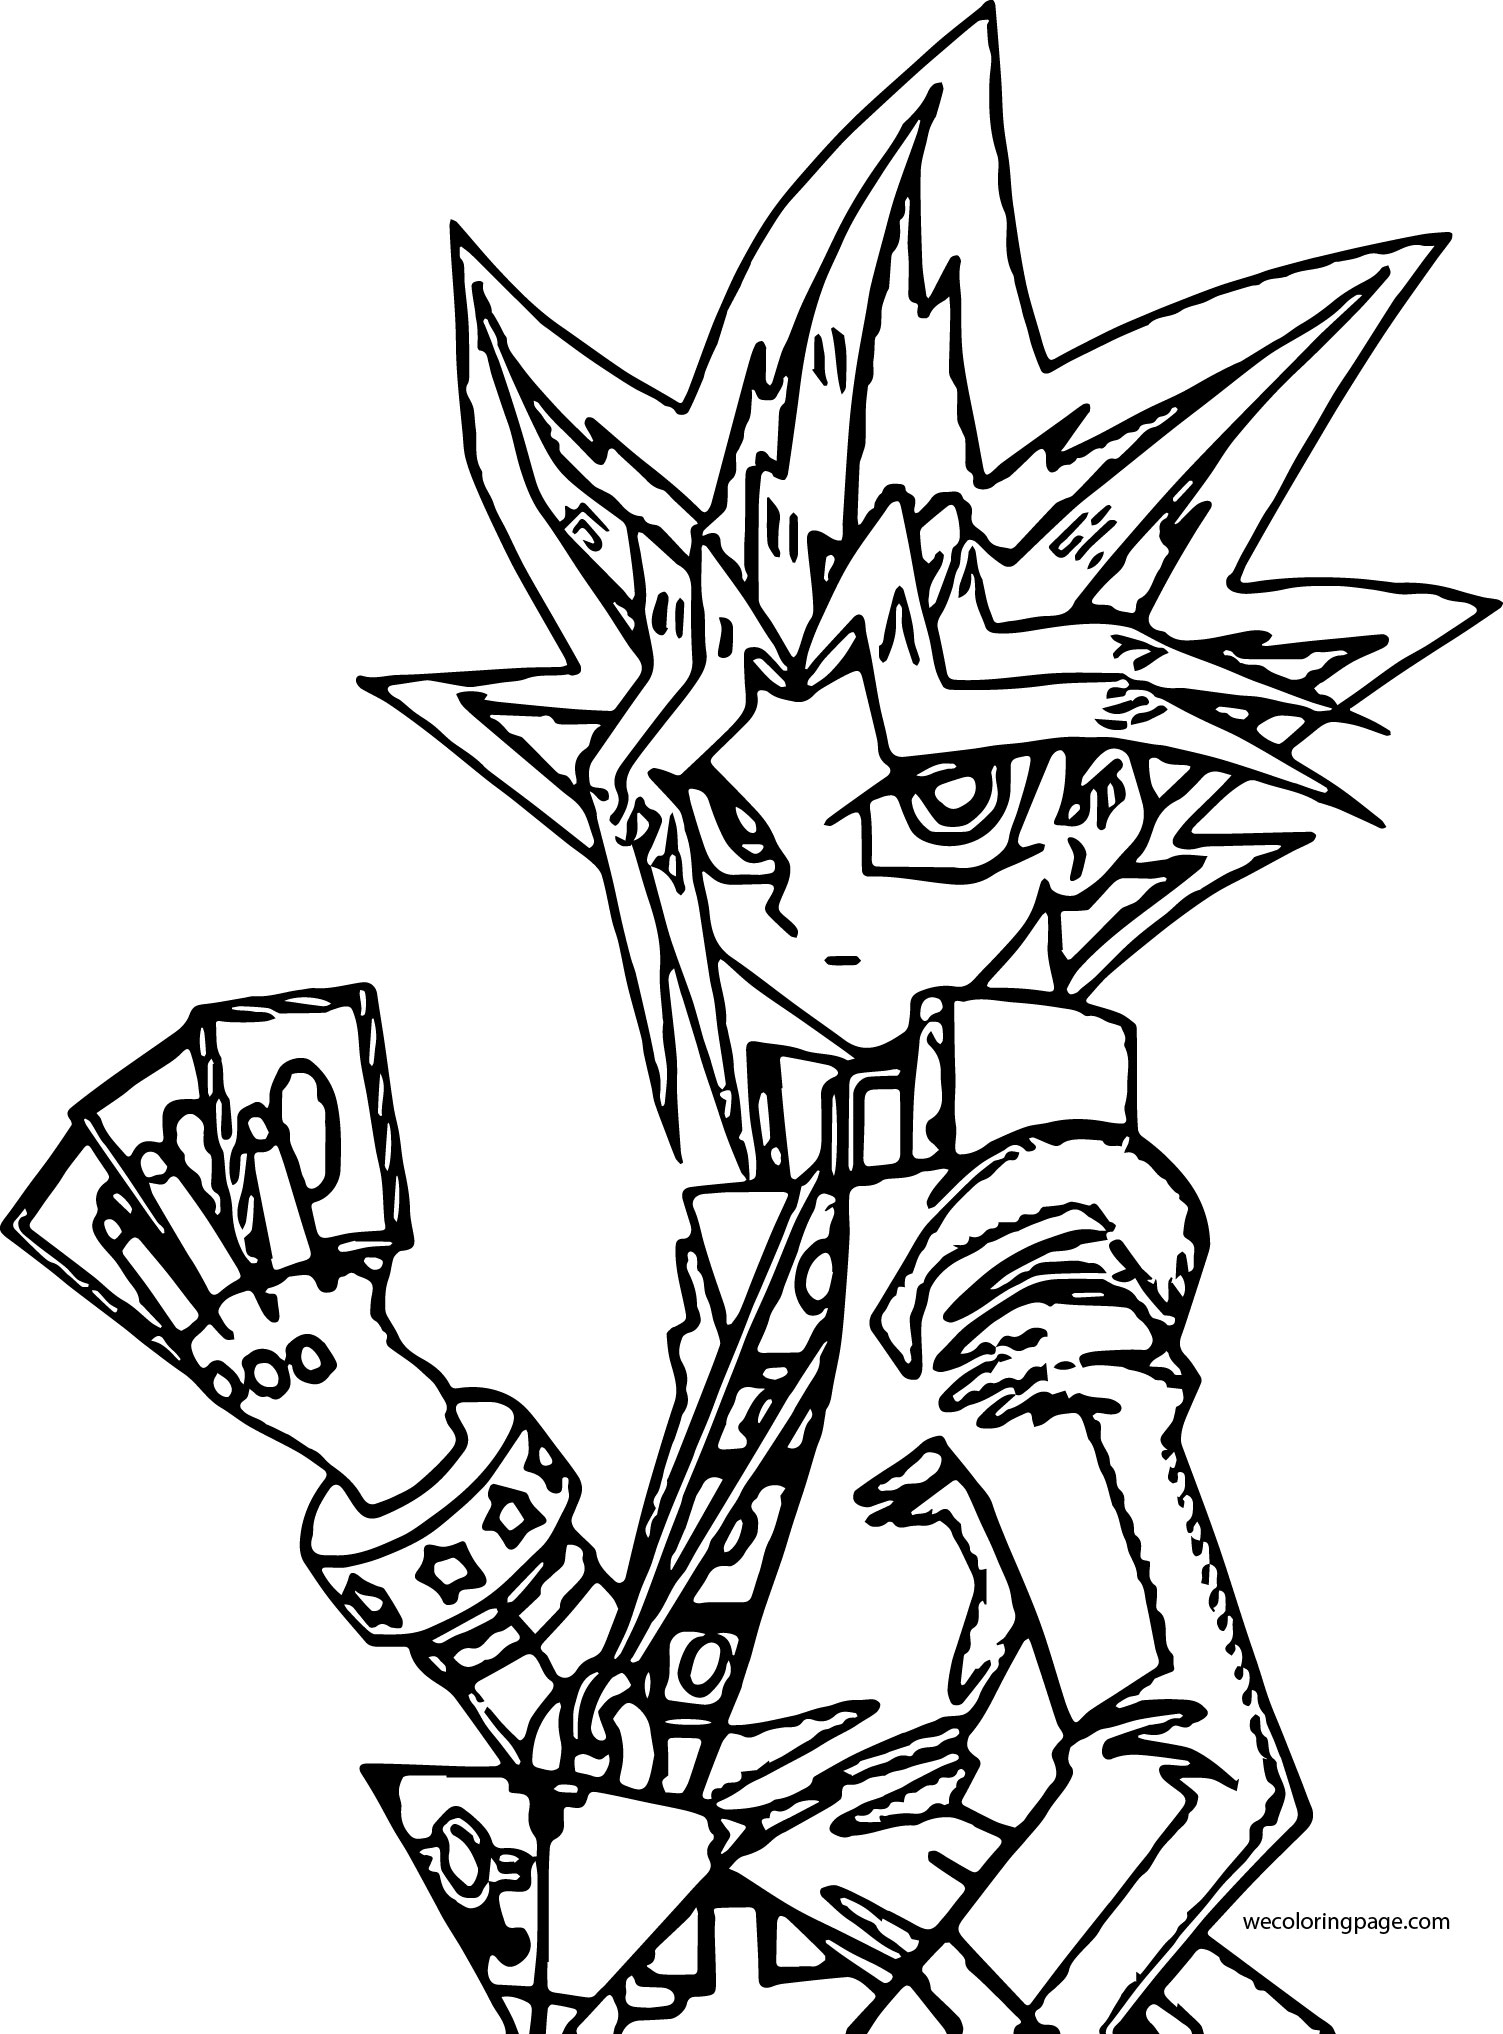 Yu Gi Oh Coloring Page WeColoringPage 131